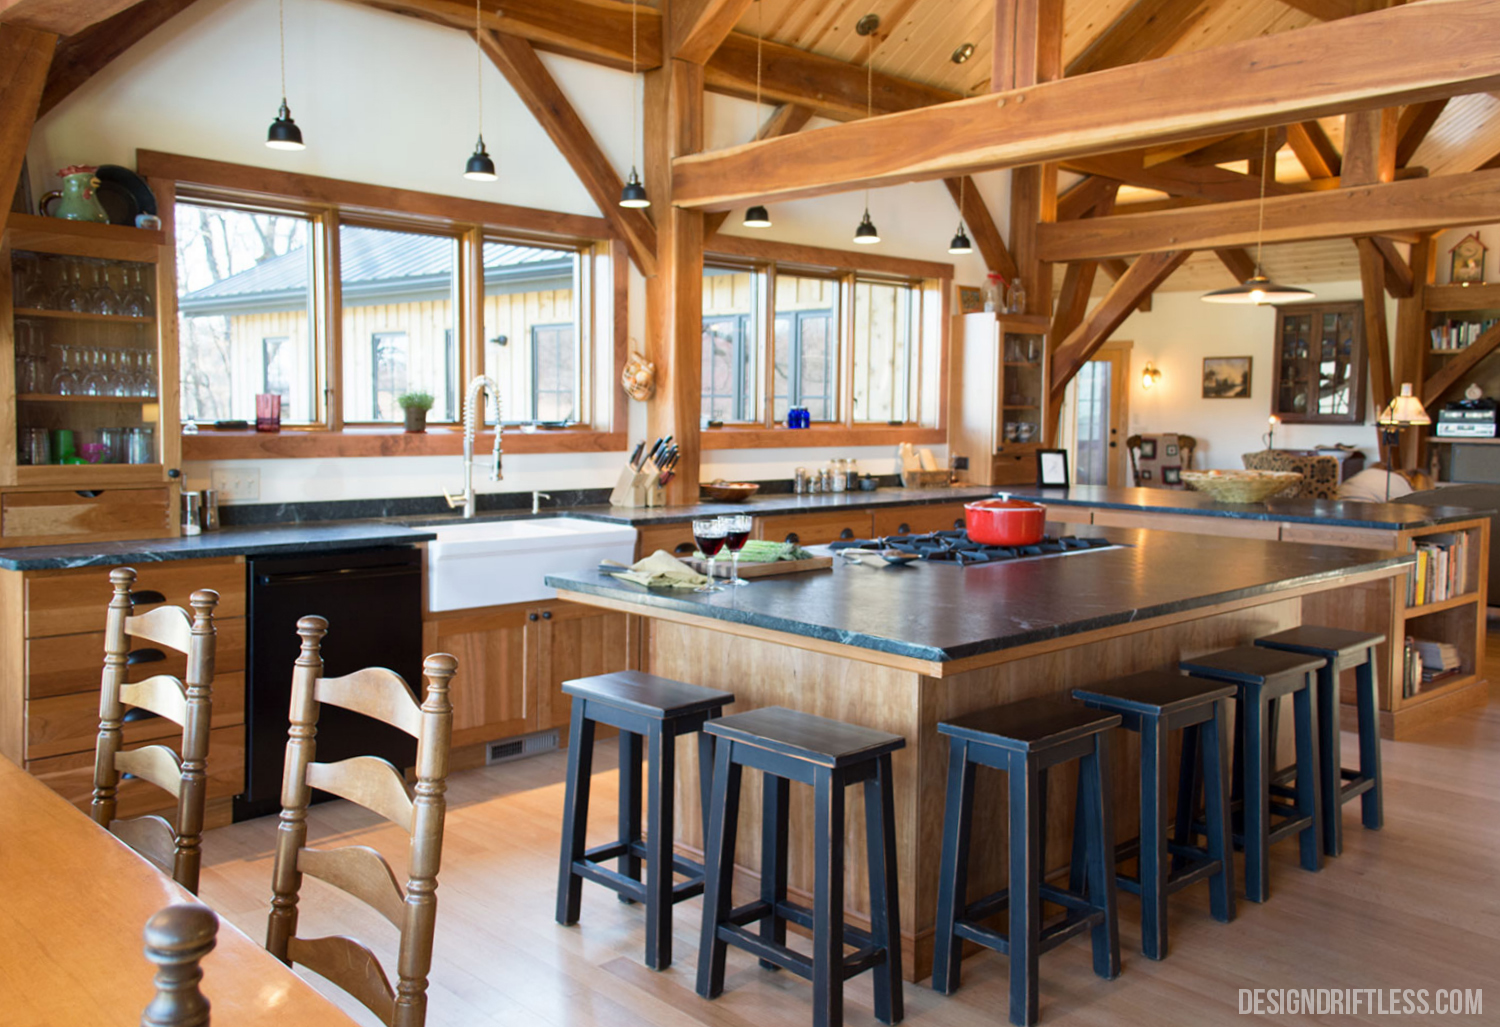 The spacious kitchen island provides a family gathering space with an incredible view